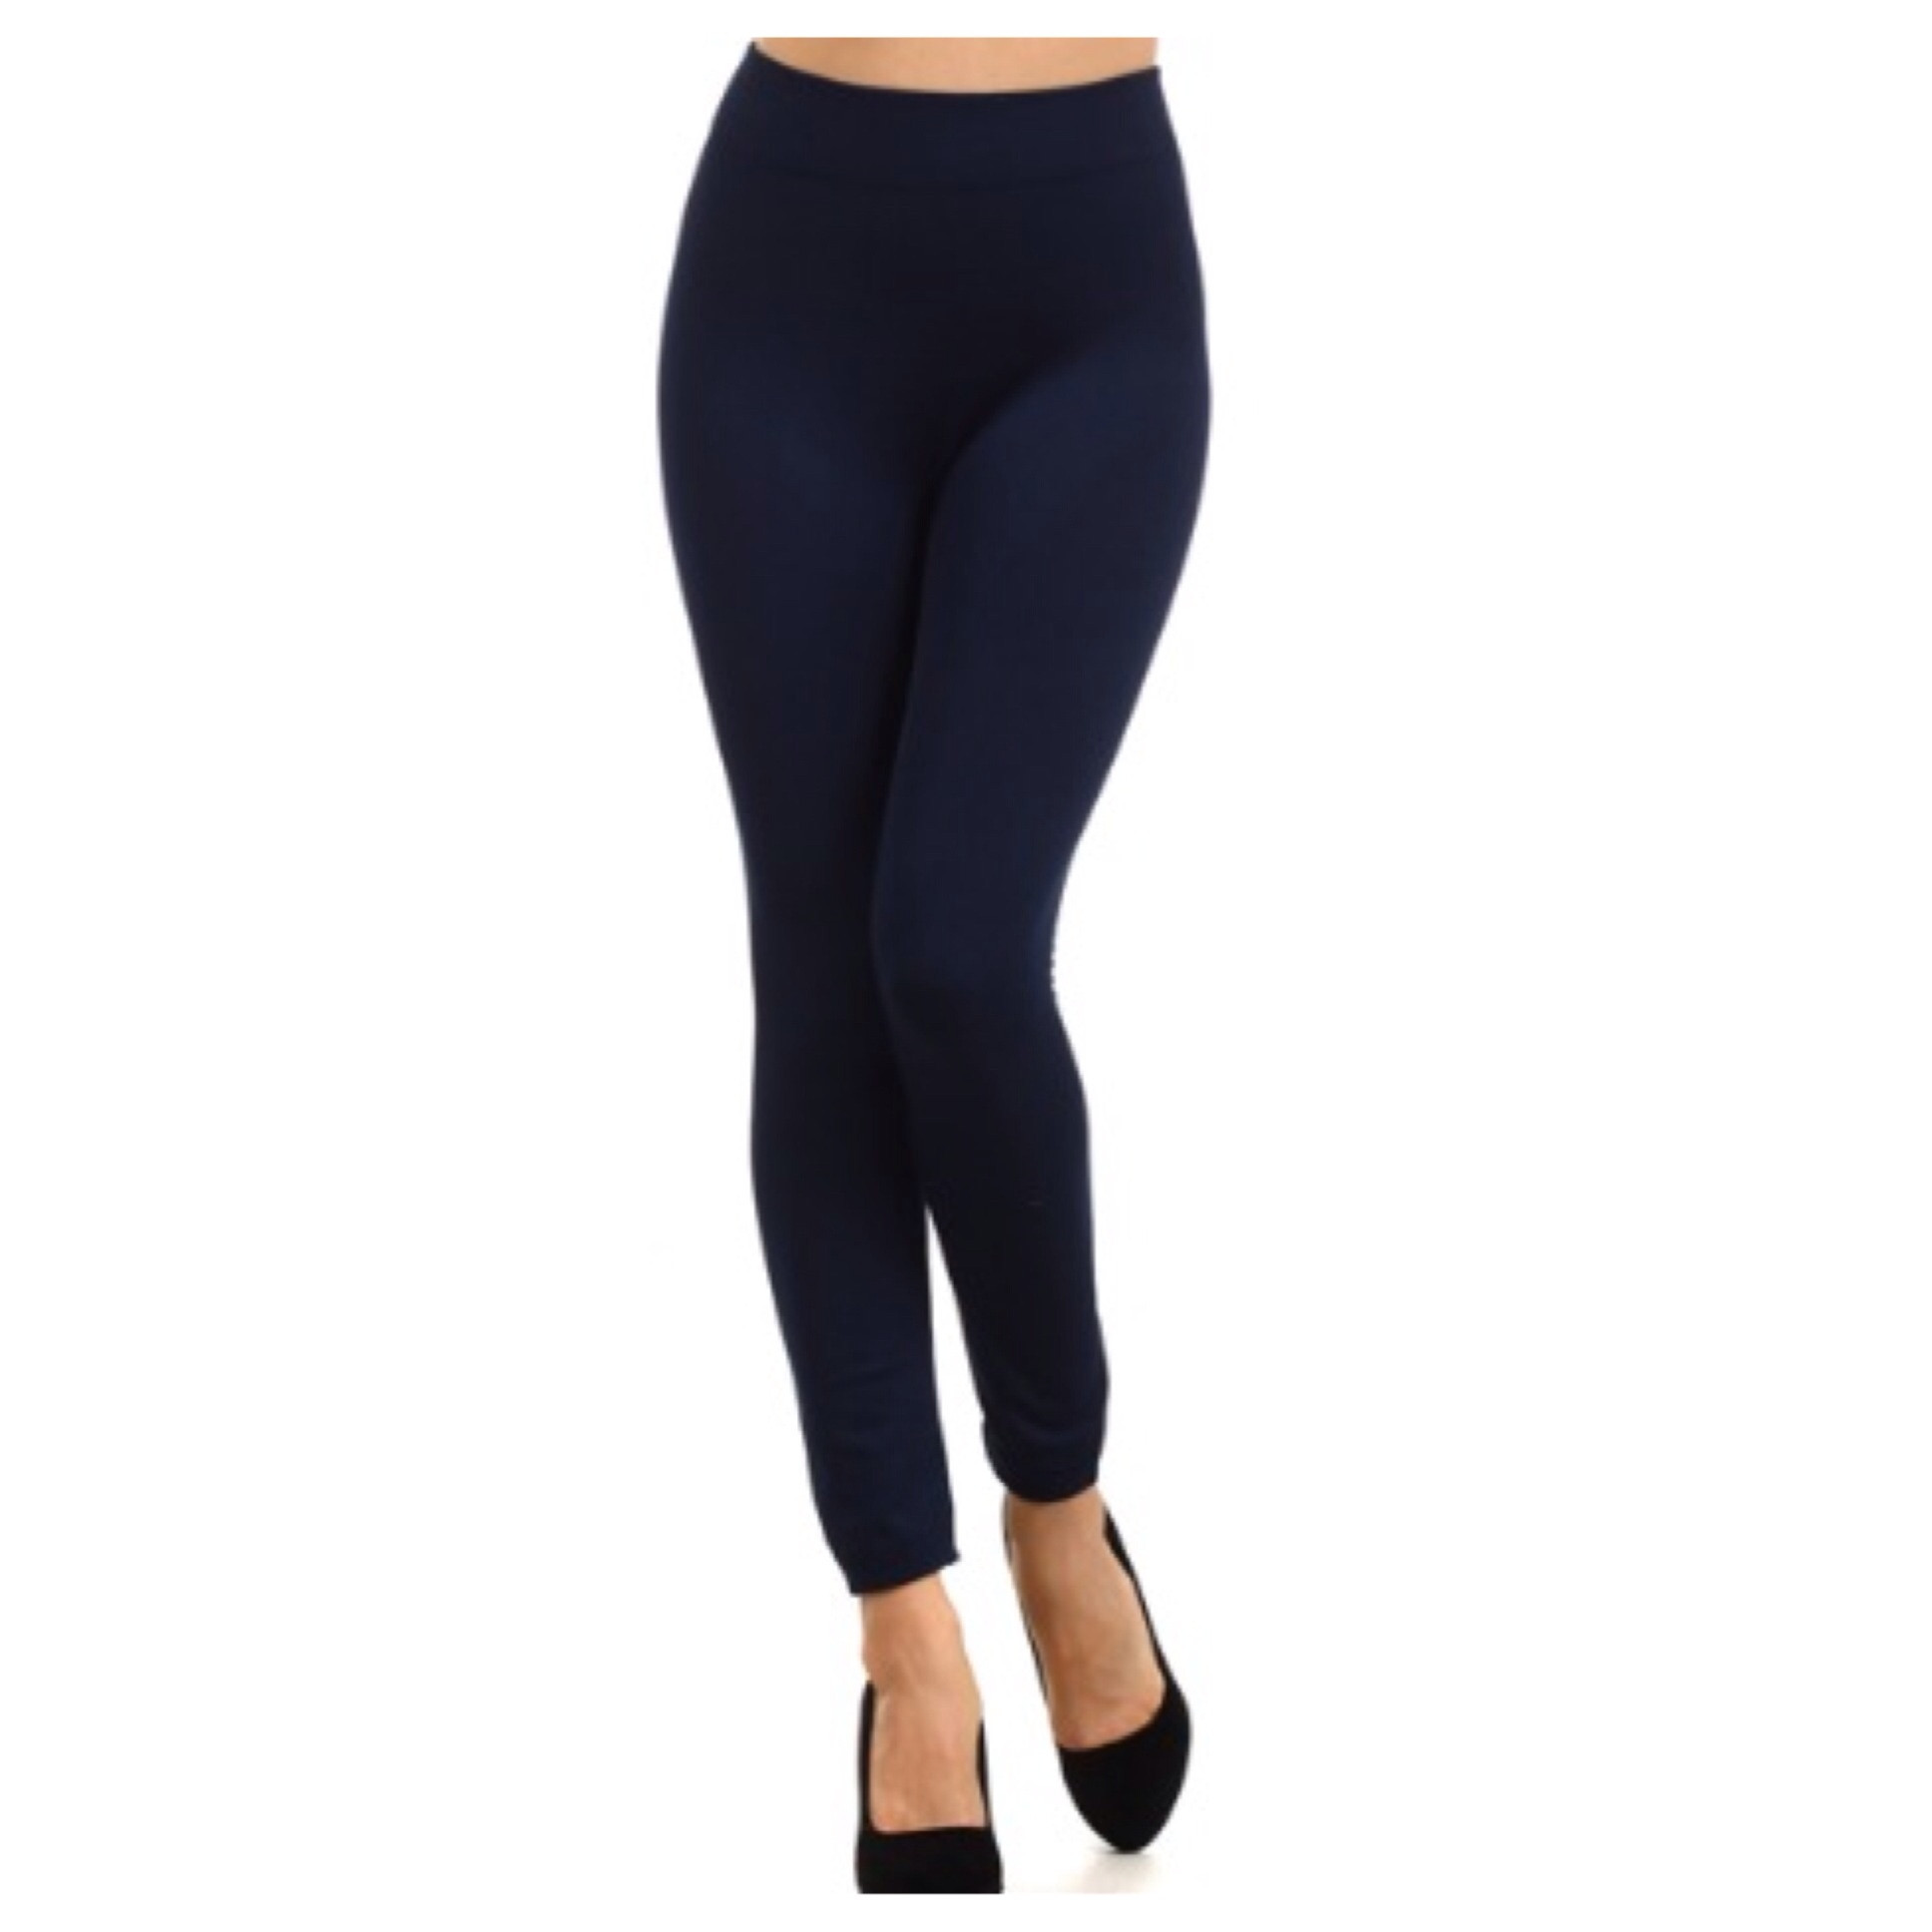 In Style Fleece Lined Solid Navy Leggings